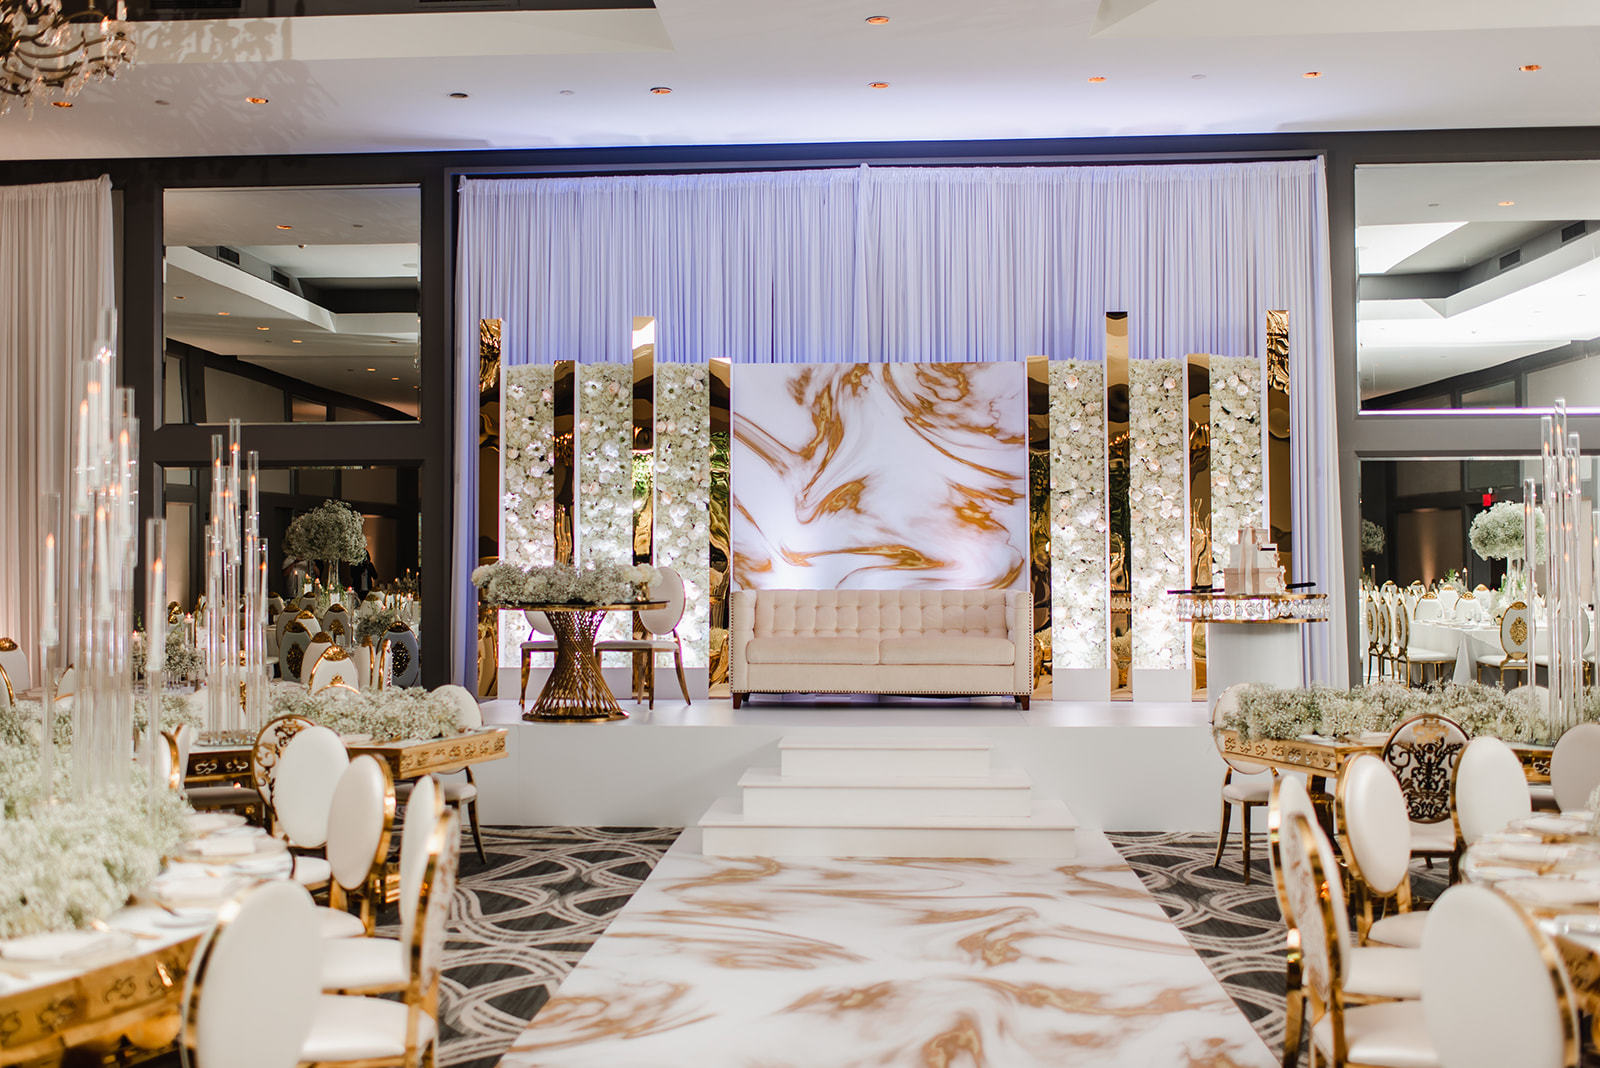 Lana & Samir - October 2019 Wedding - Houston, TX - Omni Hotel